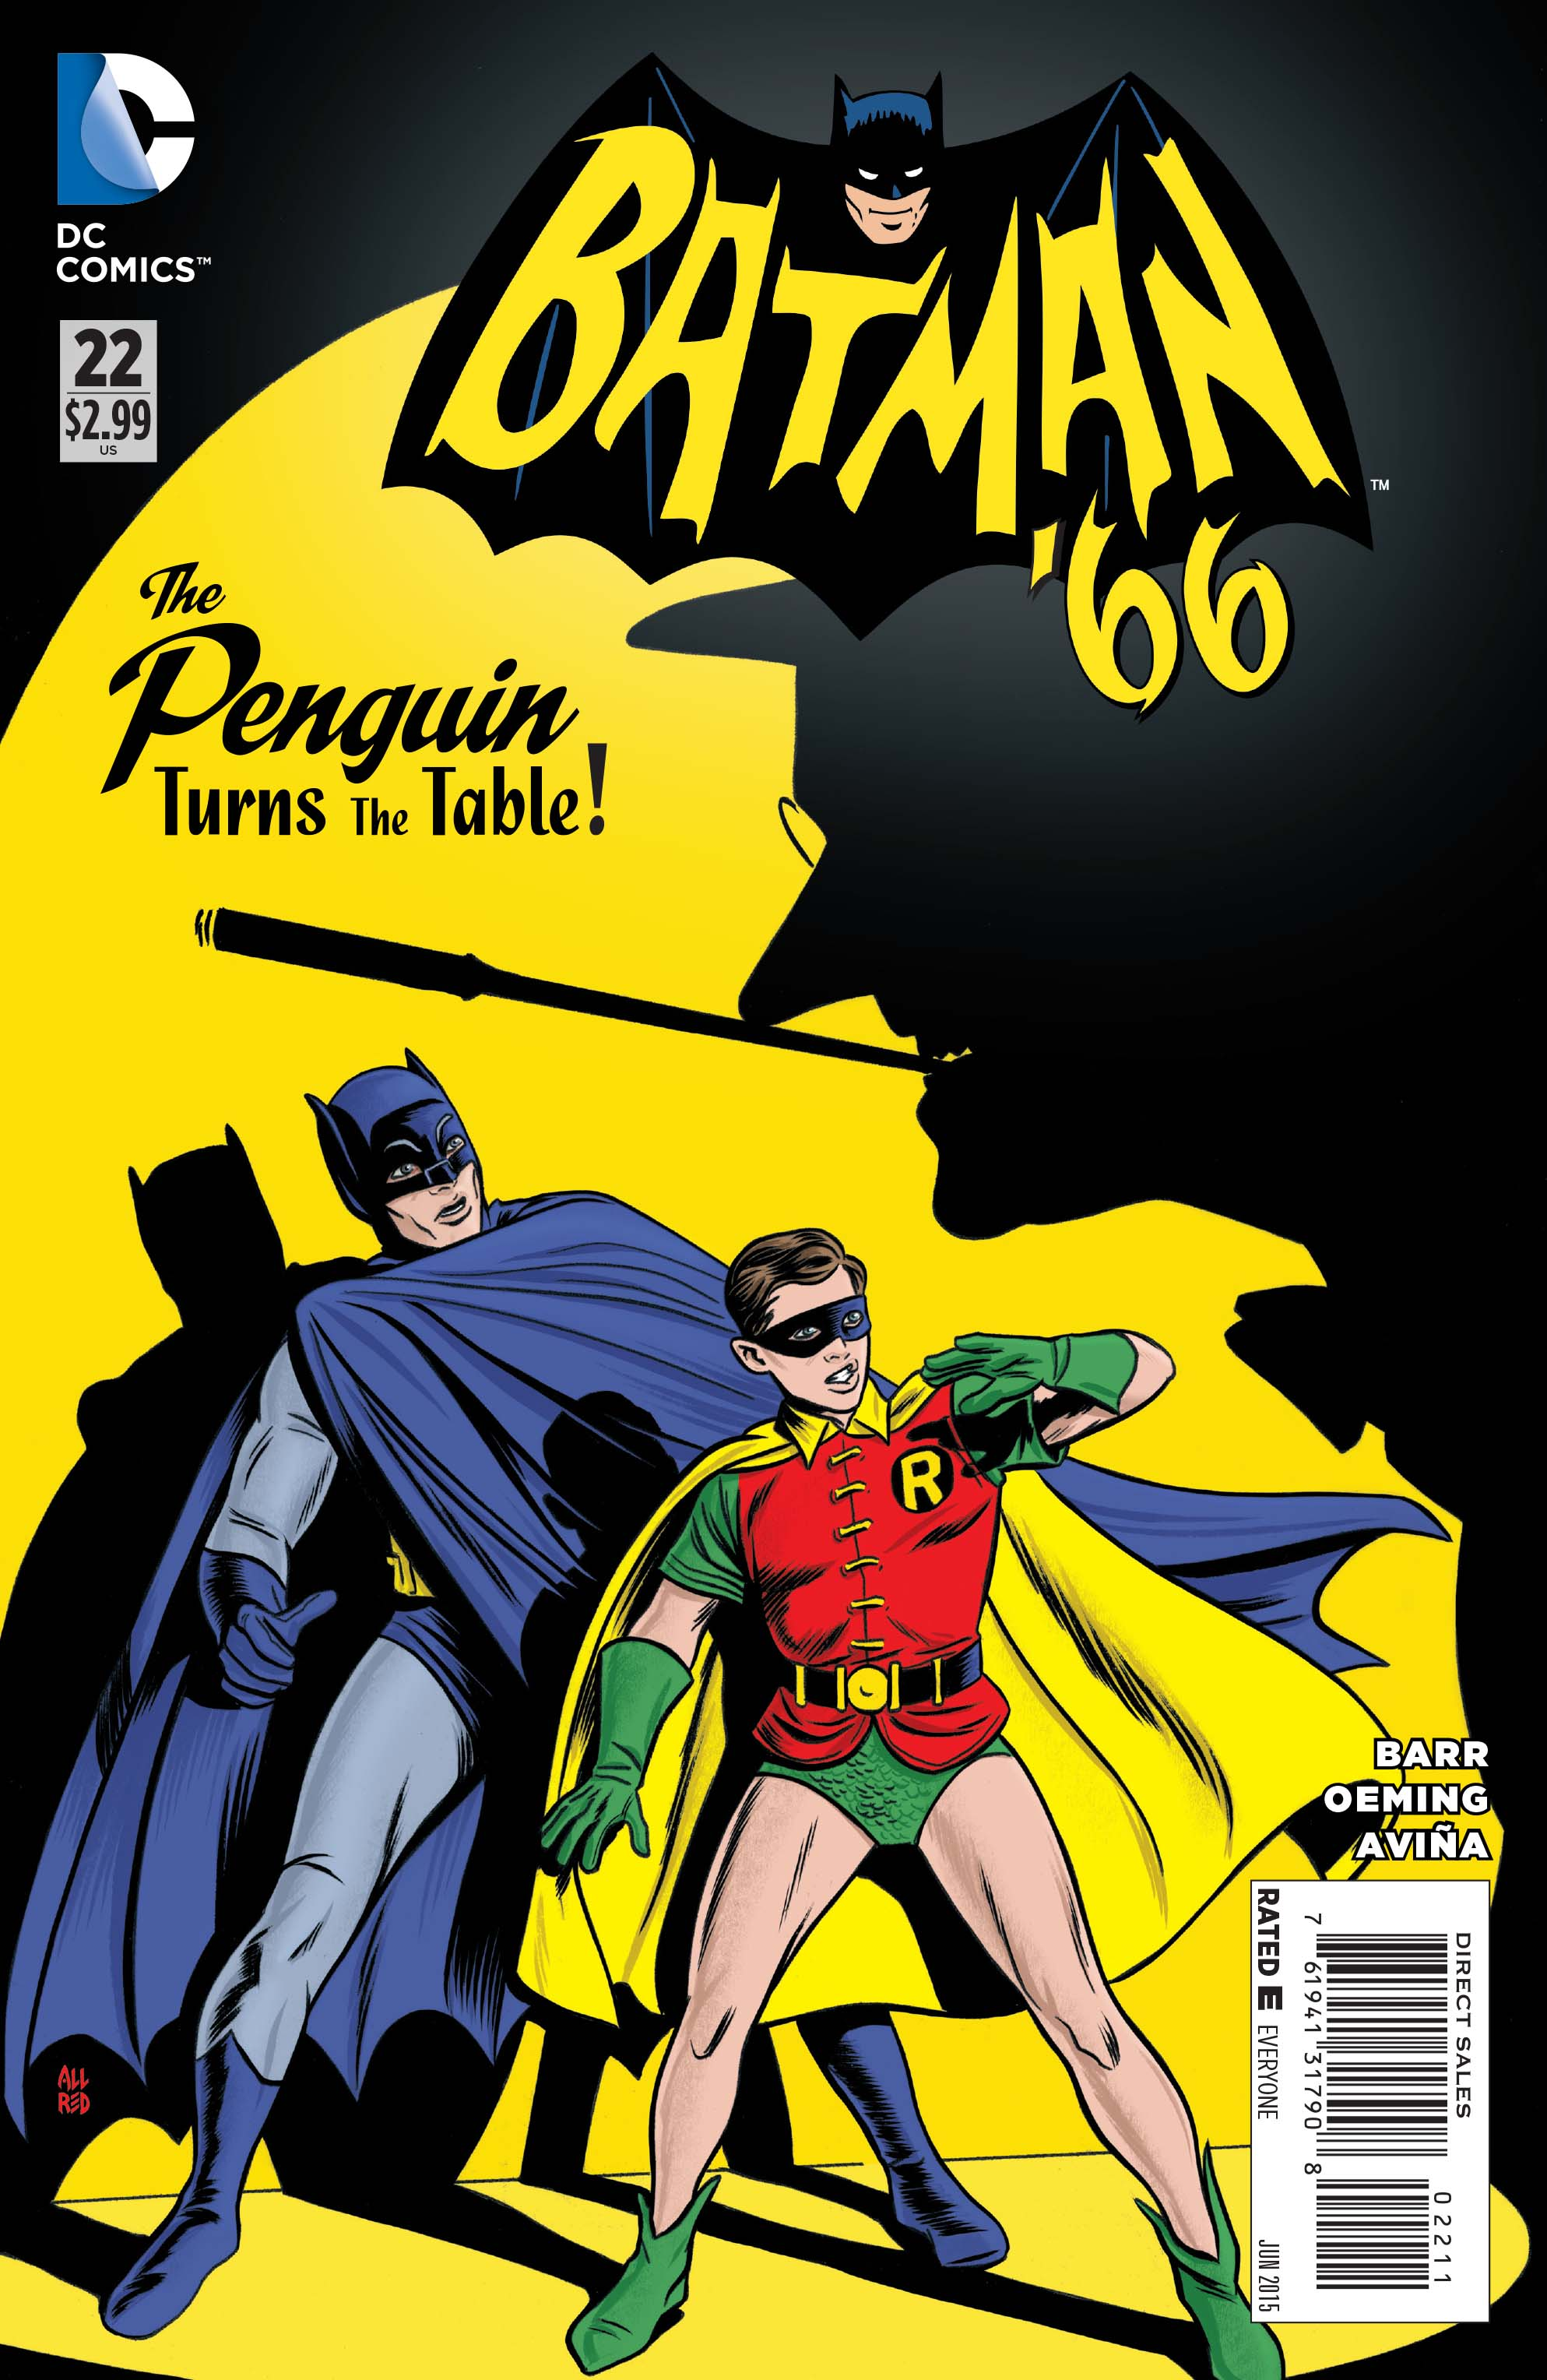 Exclusive Preview Batman 66 22 13th Dimension Comics